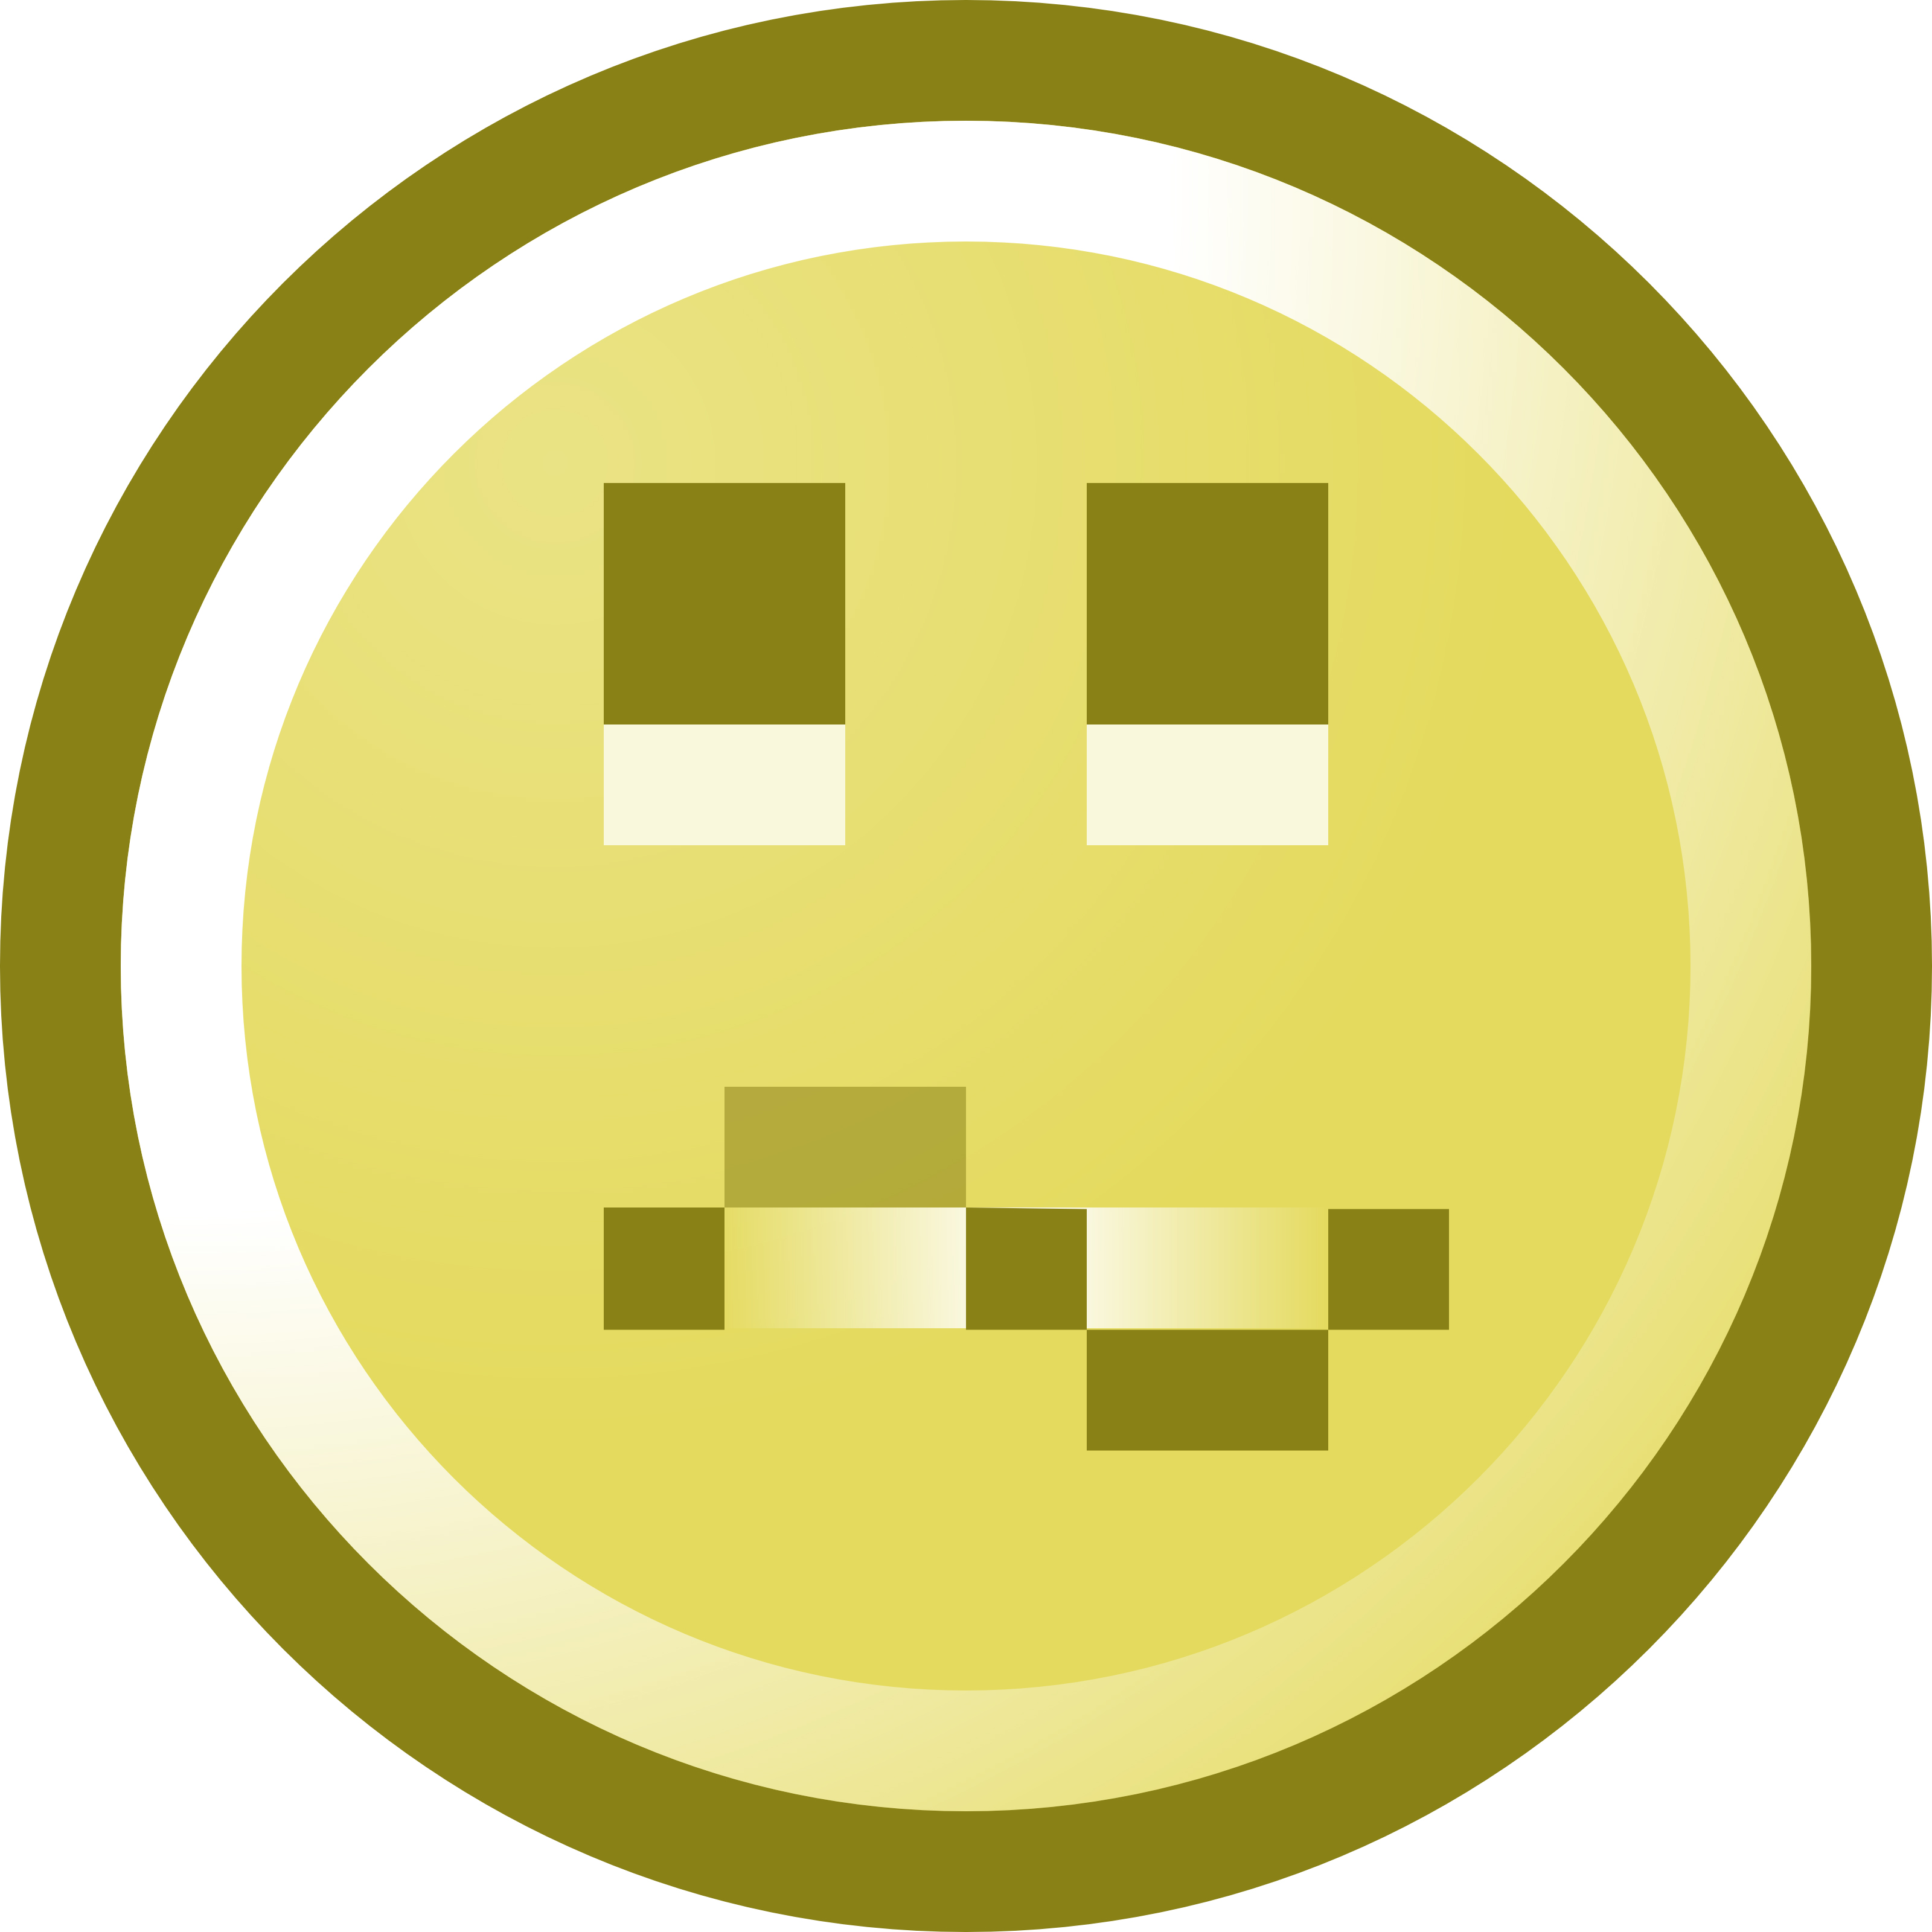 3200x3200 Confused Smiley Face Clip Art Illustration